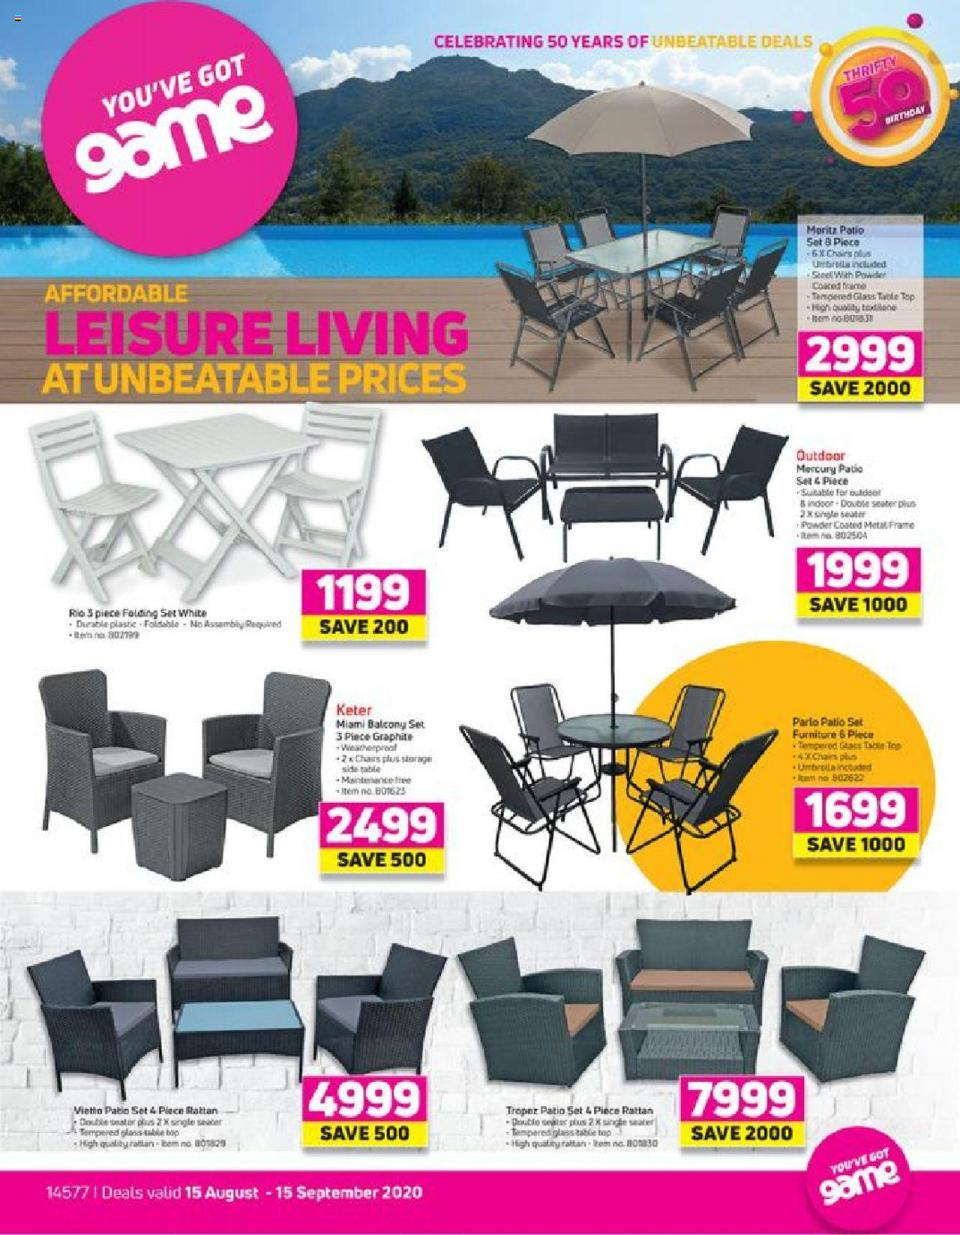 game specials leisure living 15 august 2020